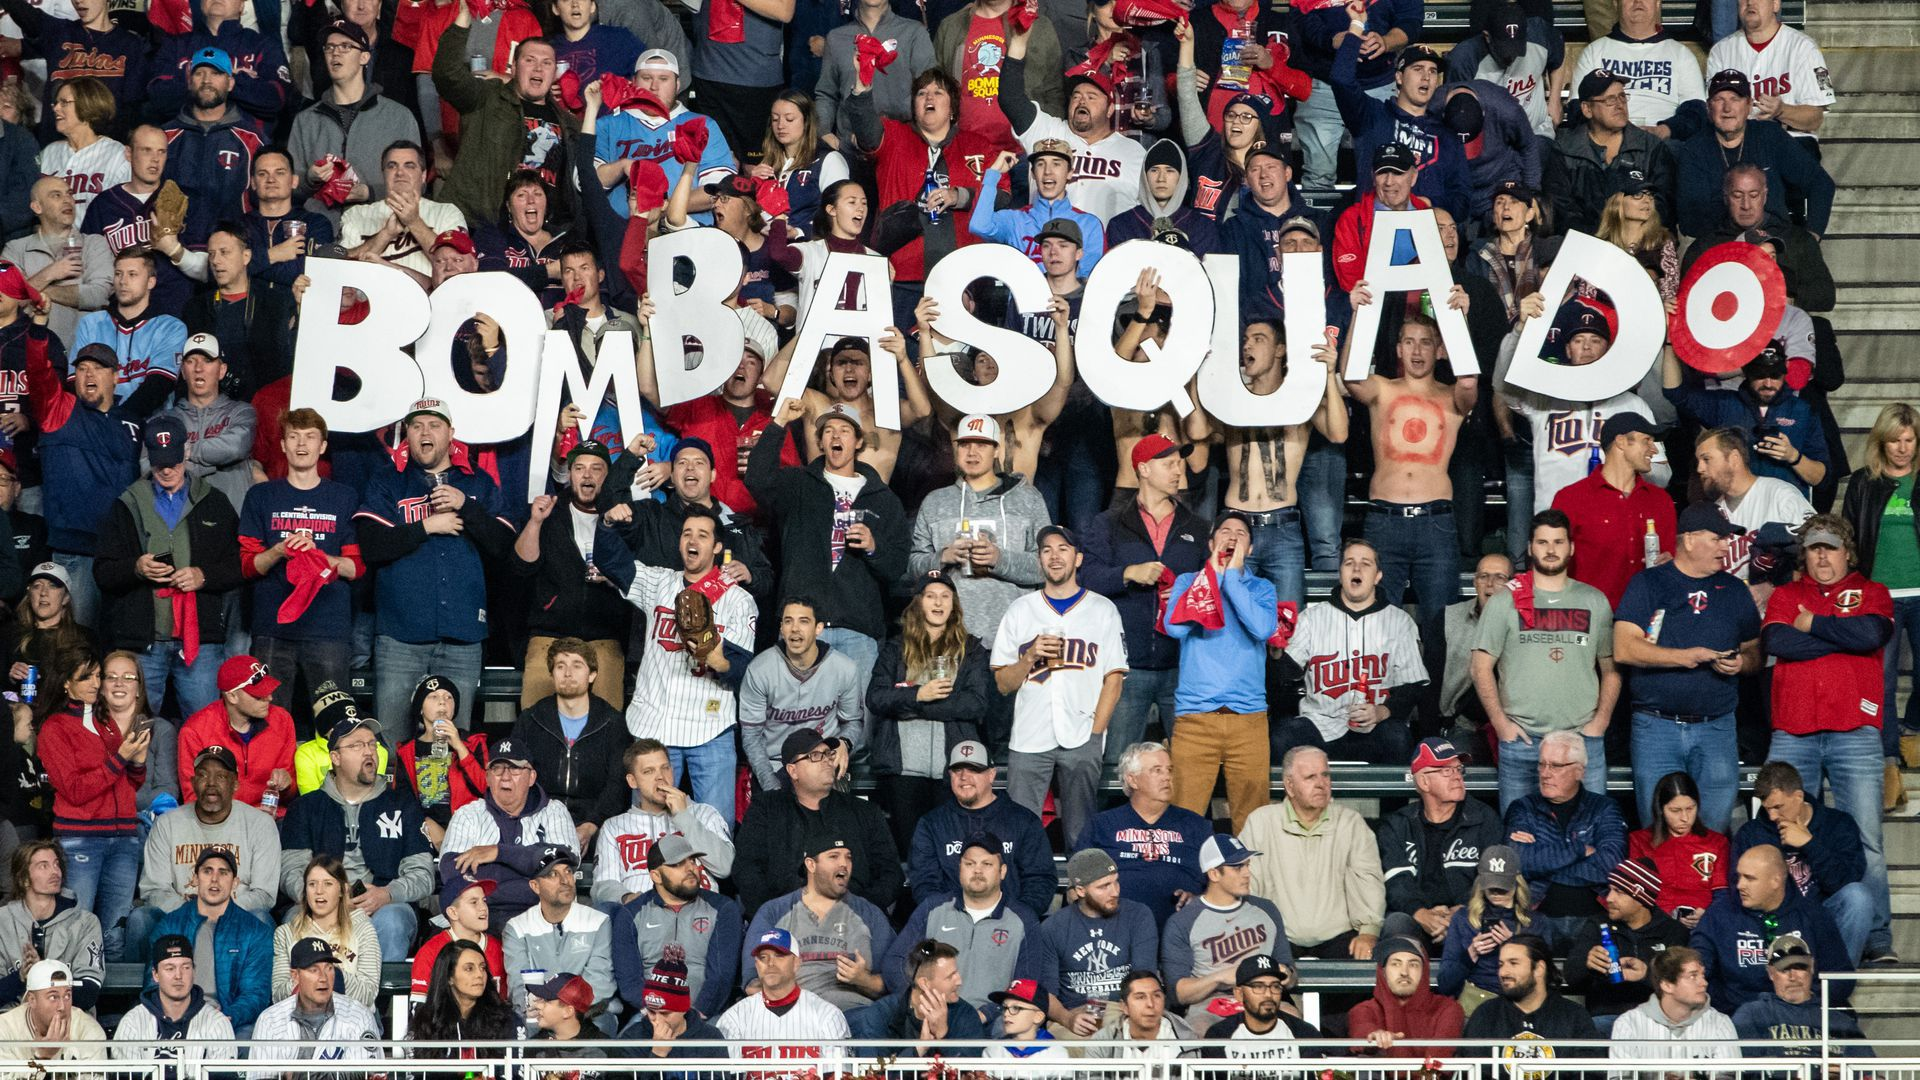 Minnesota Twins fans hold up letters spelling out Bombsquad at a game